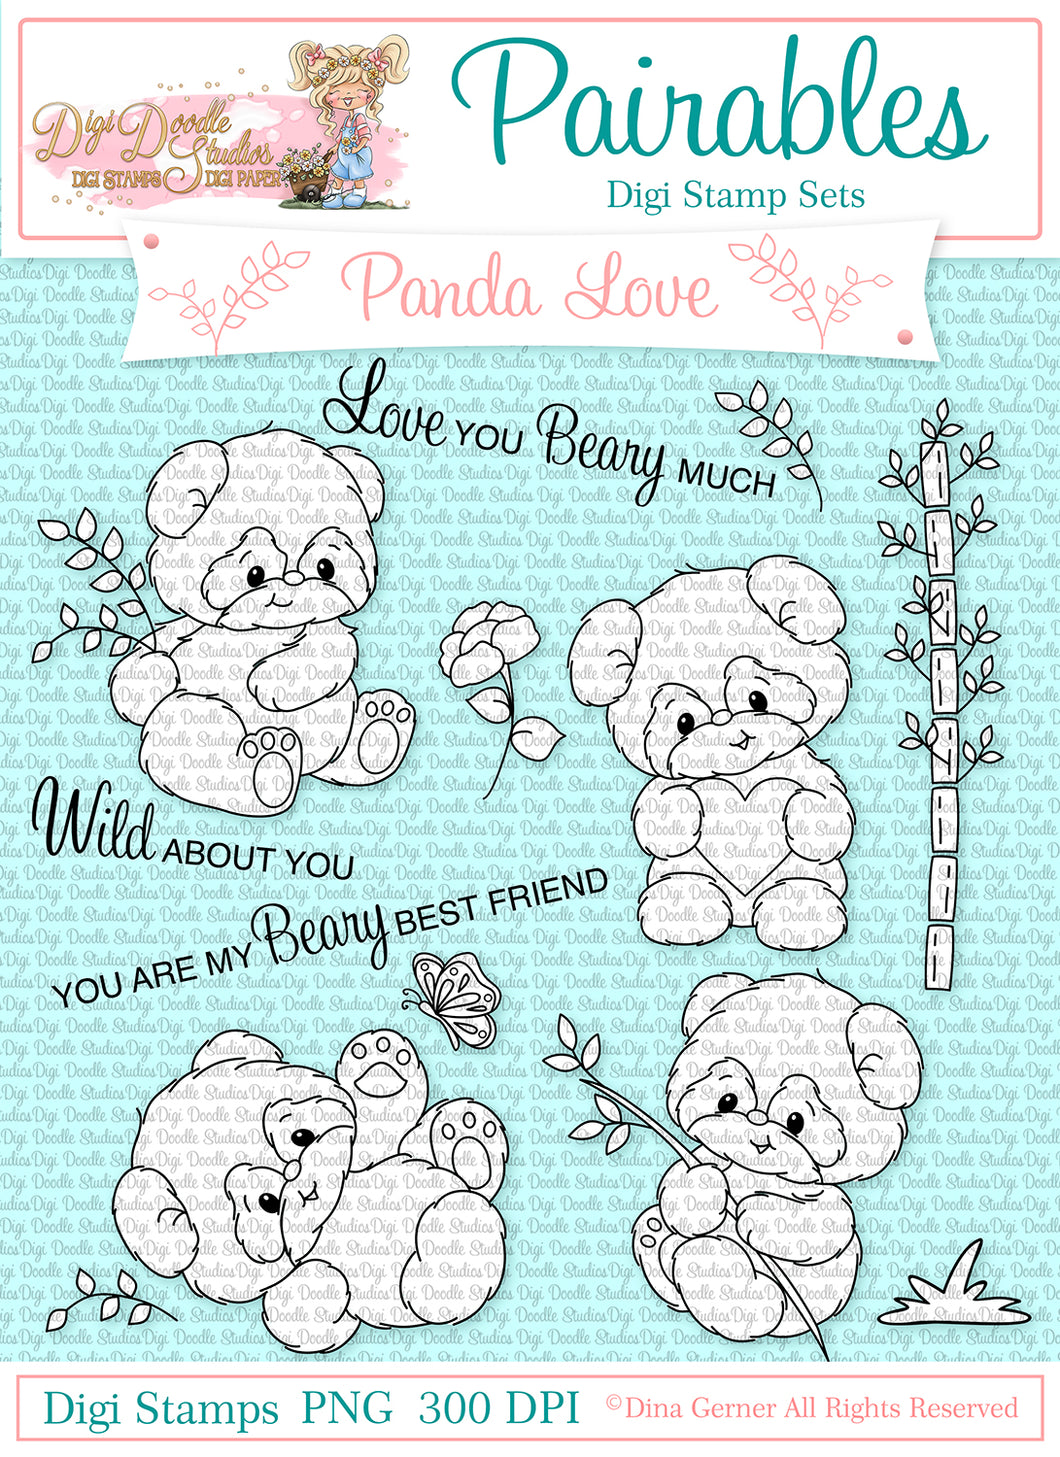 Panda Love Pairables Digi Doodles Digi Stamp Set